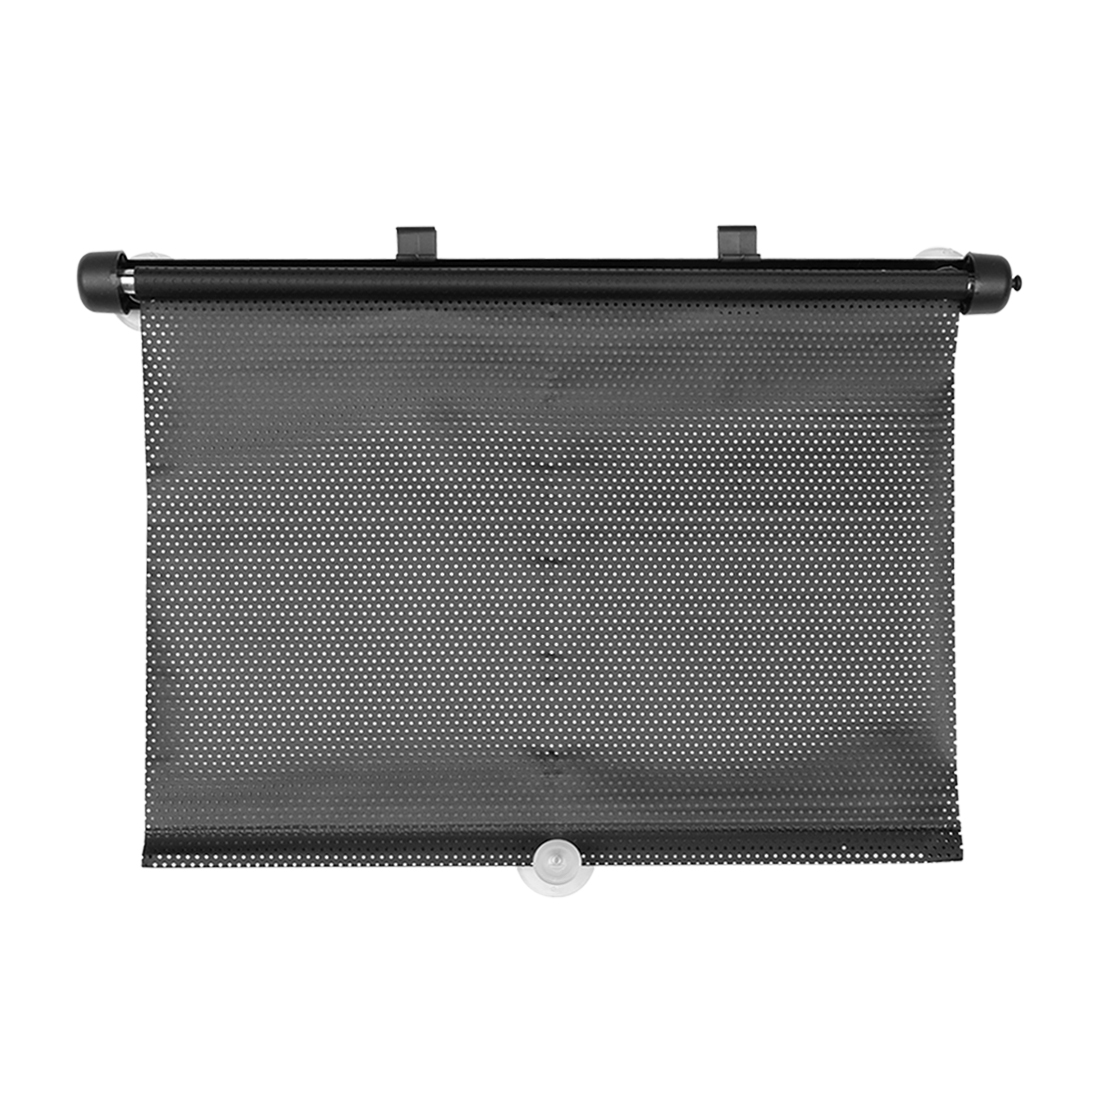 44cm x 36cm Black Mesh Design Side Window Sun Shade Sunshield for Car